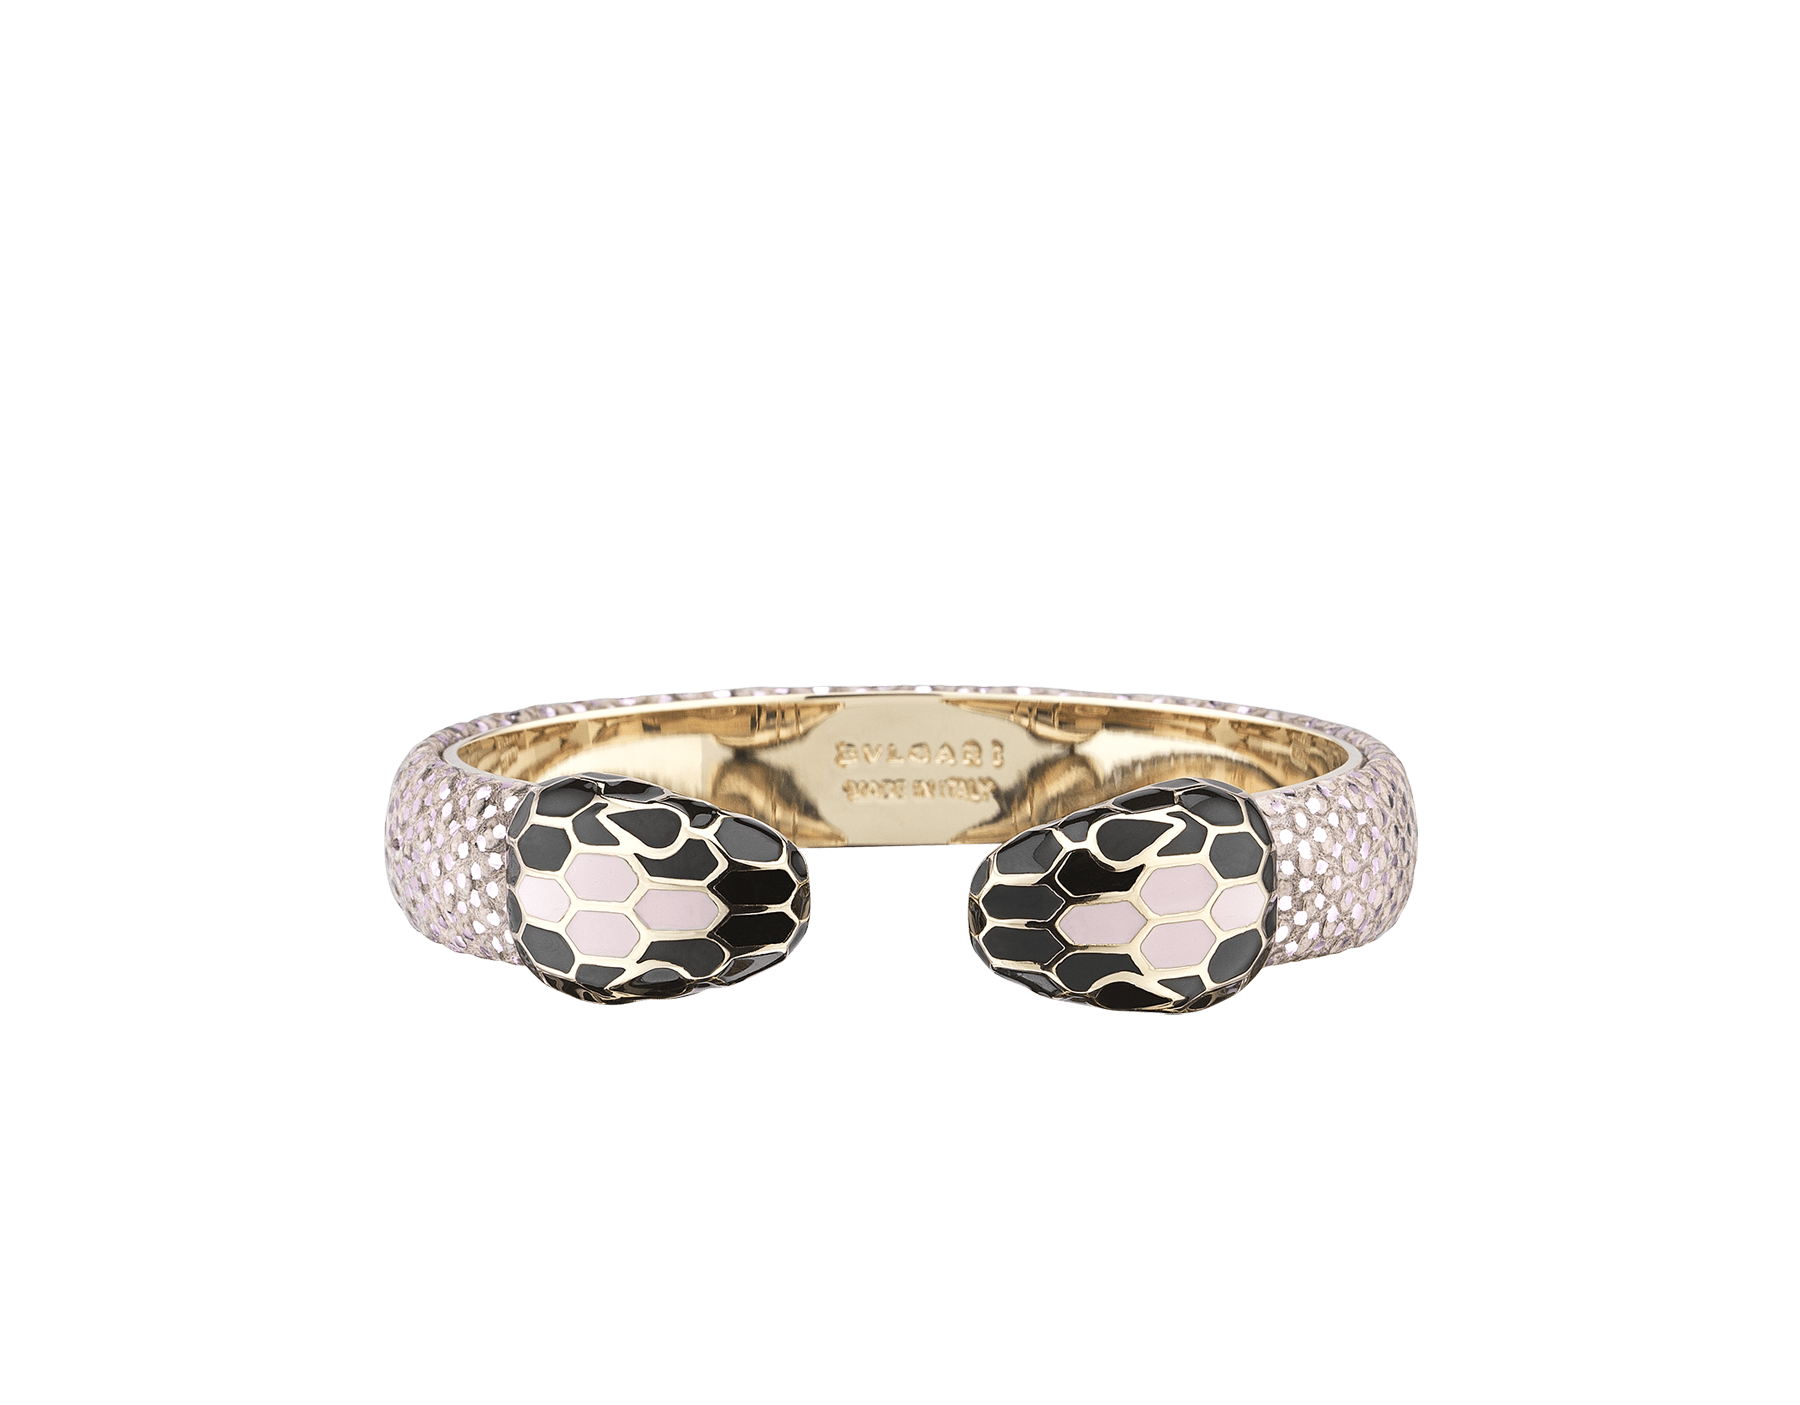 Serpenti Forever bangle bracelet in rosa di francia metallic karung skin, with brass light gold plated hardware. Iconic contrasting snakehead décor in black and rosa di francia enamel, with black enamel eyes. 289018 image 1